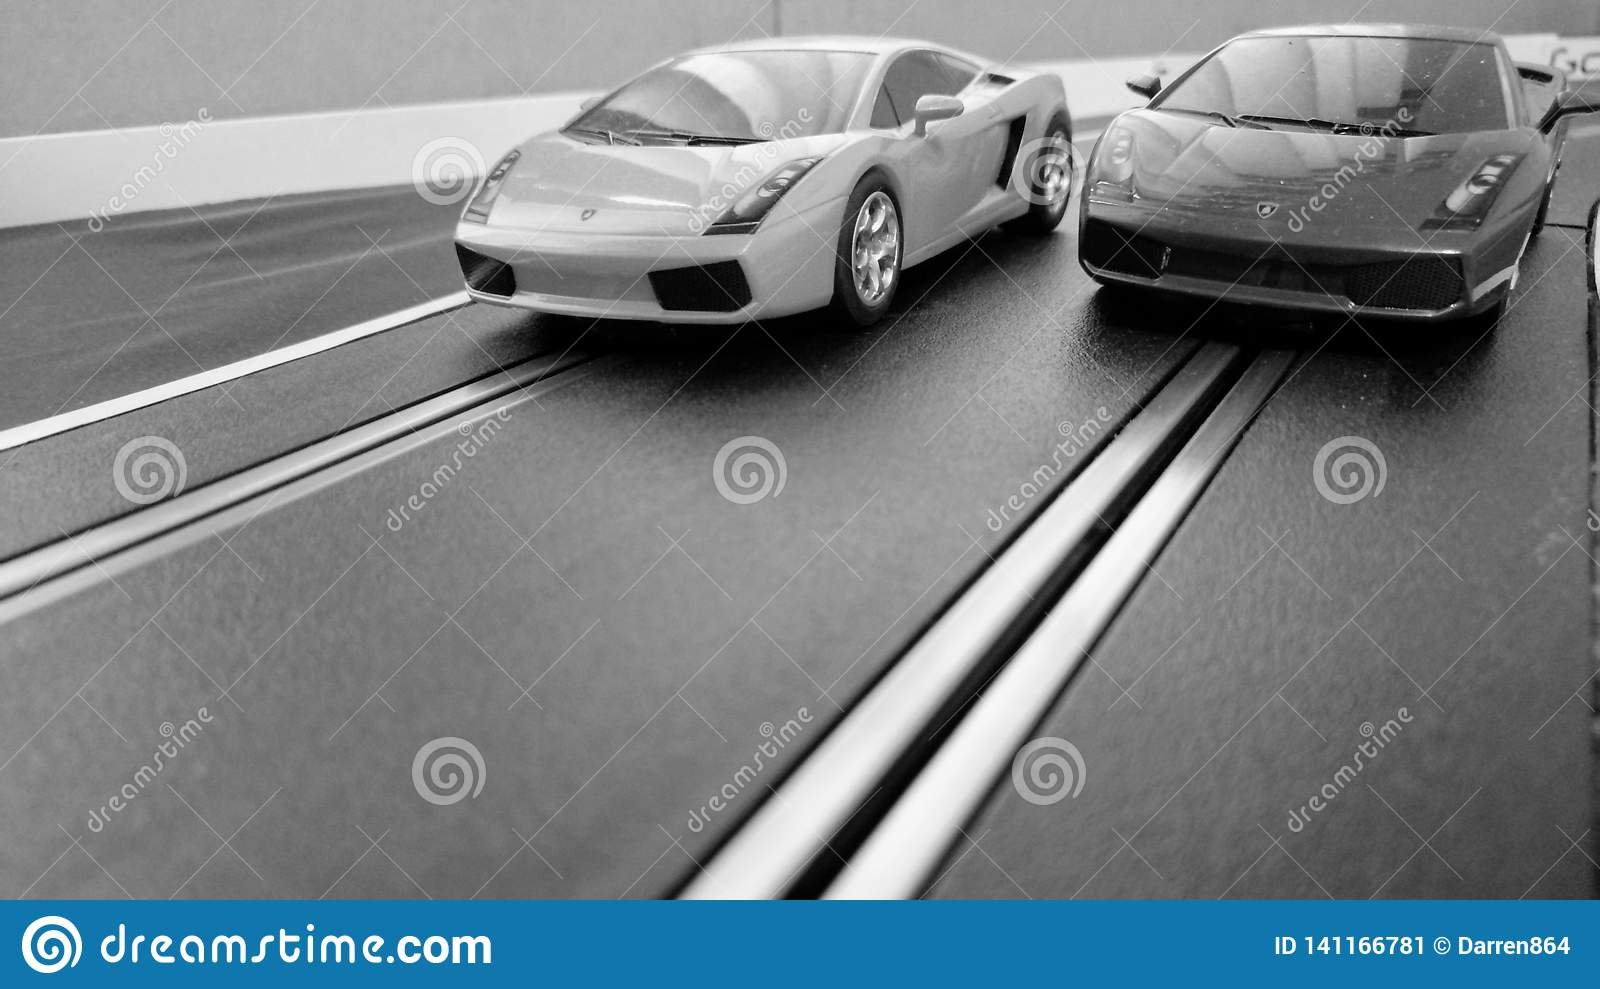 Slot cars racing on a slot car track, black and white for a retro look